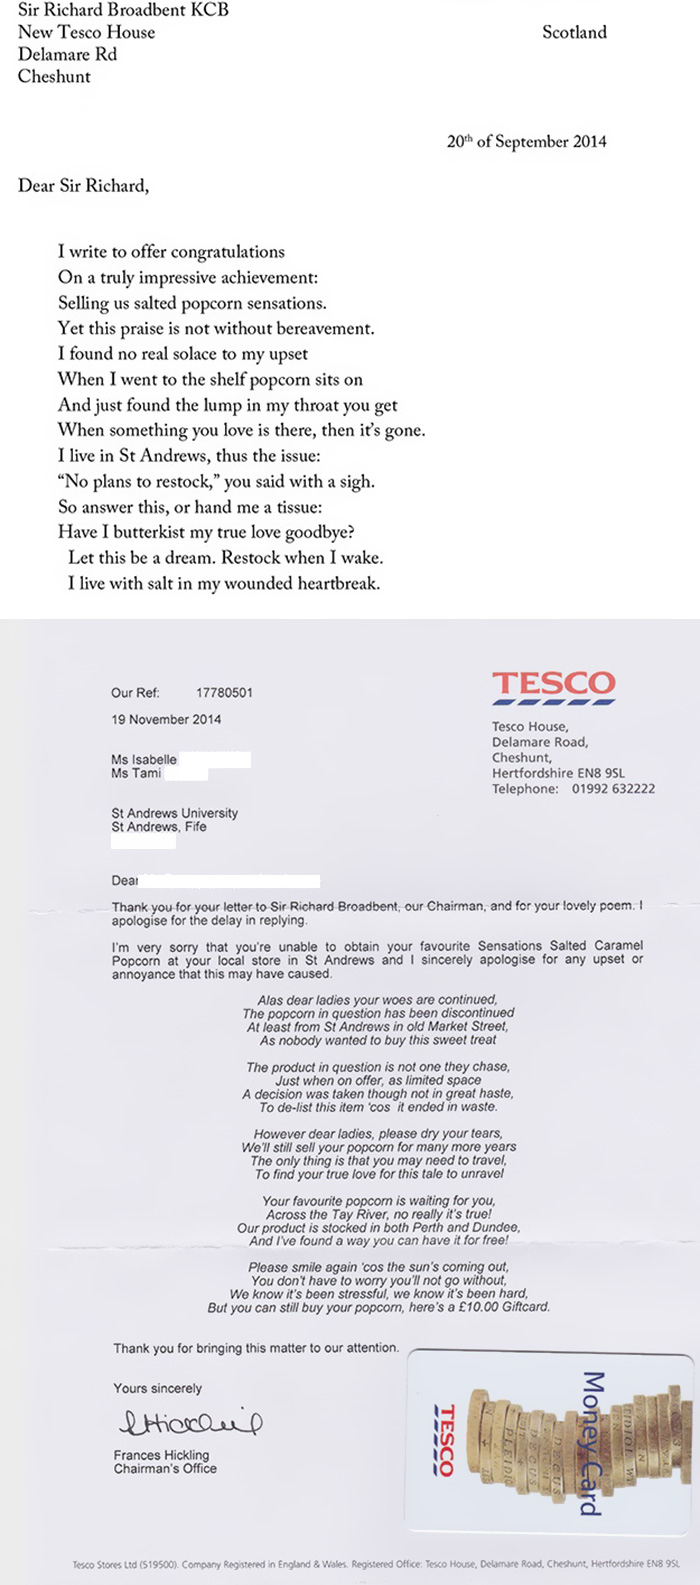 funny-customer-complaints-23-57cffdb93f1b6__700